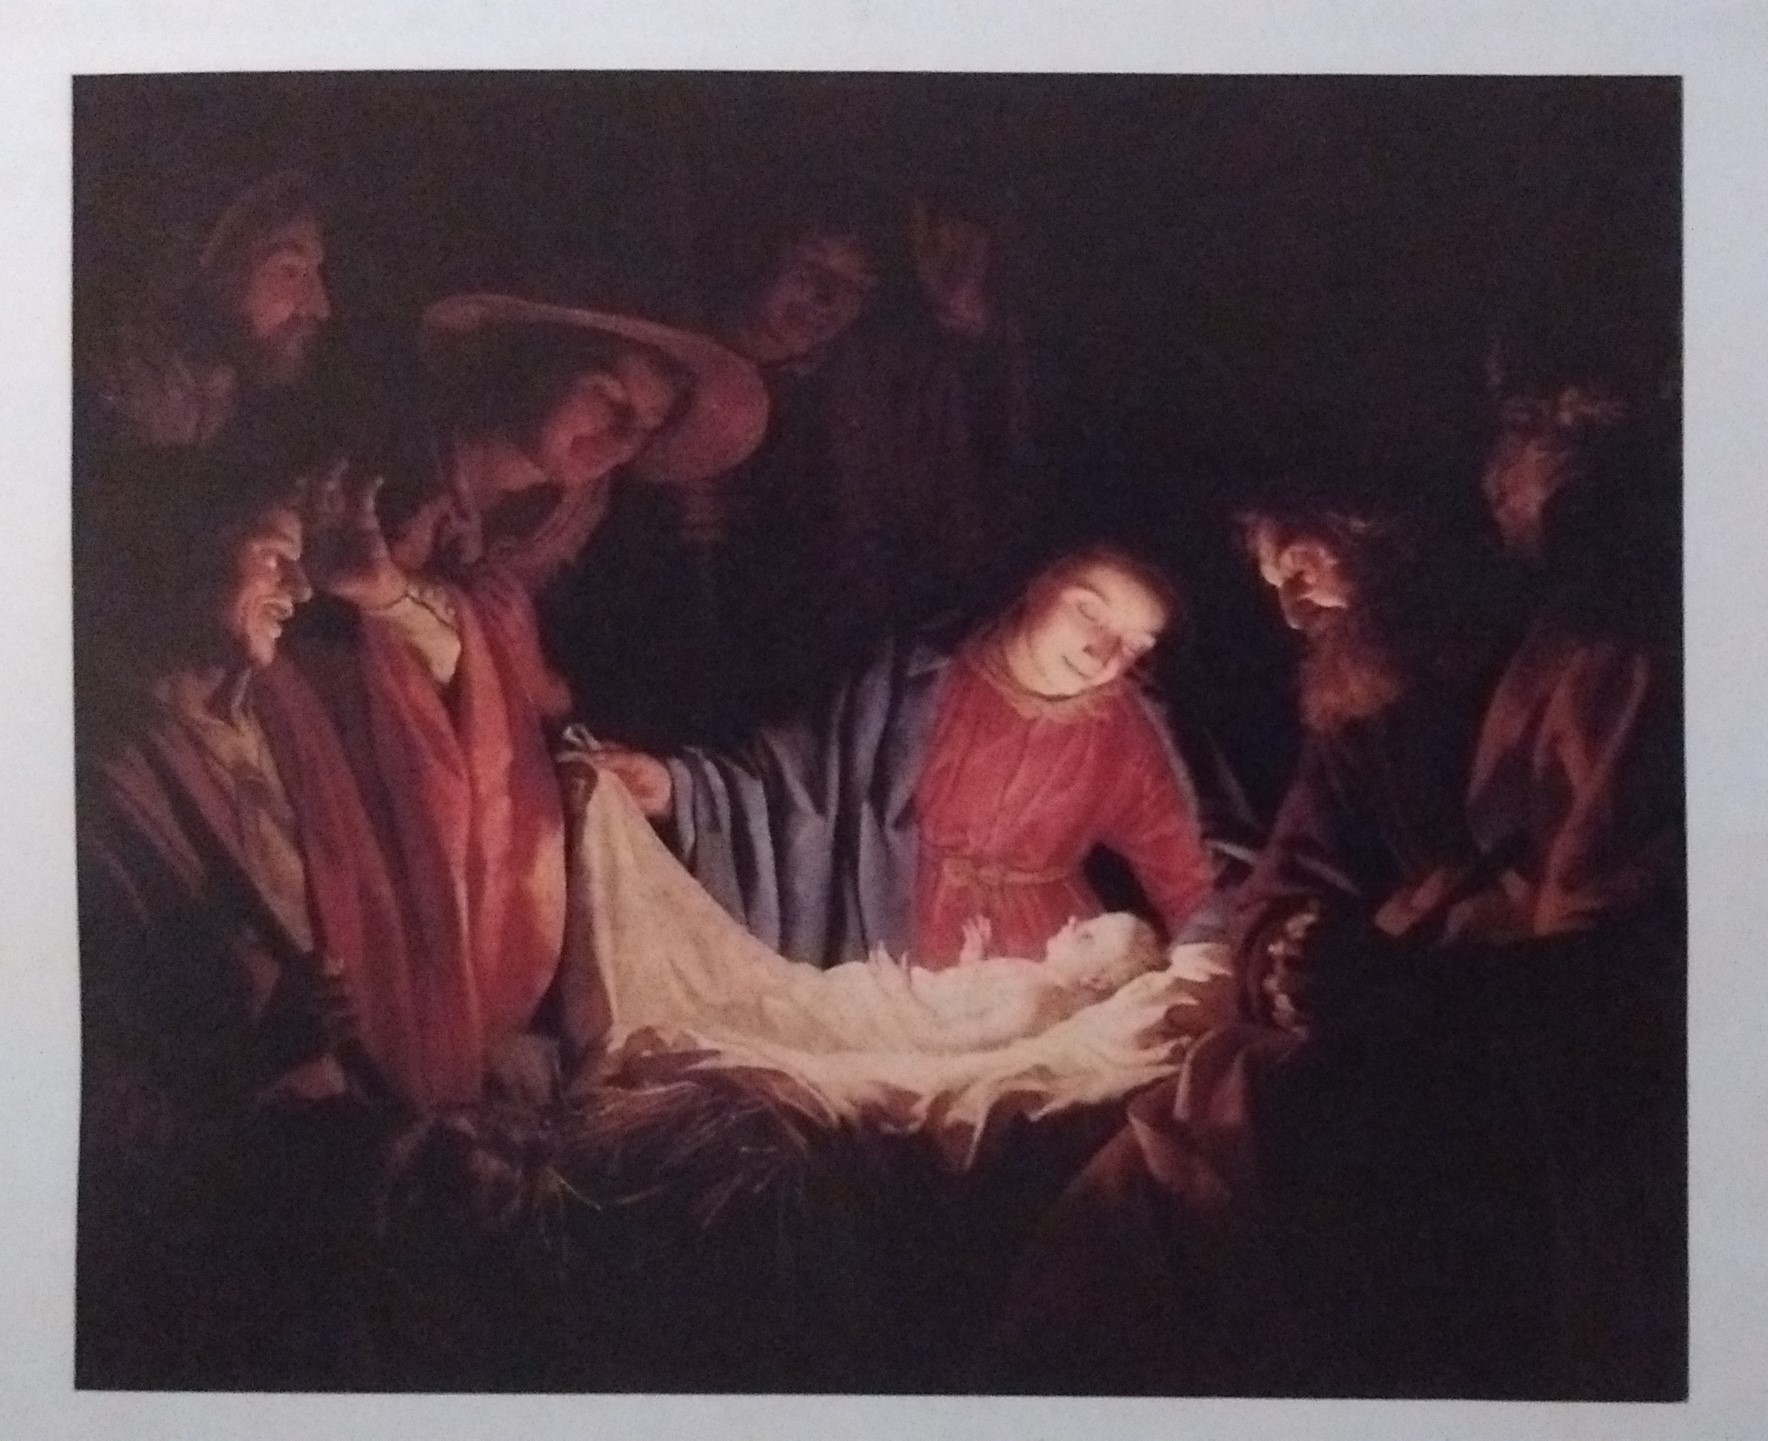 Suffering and Hope at Christmas